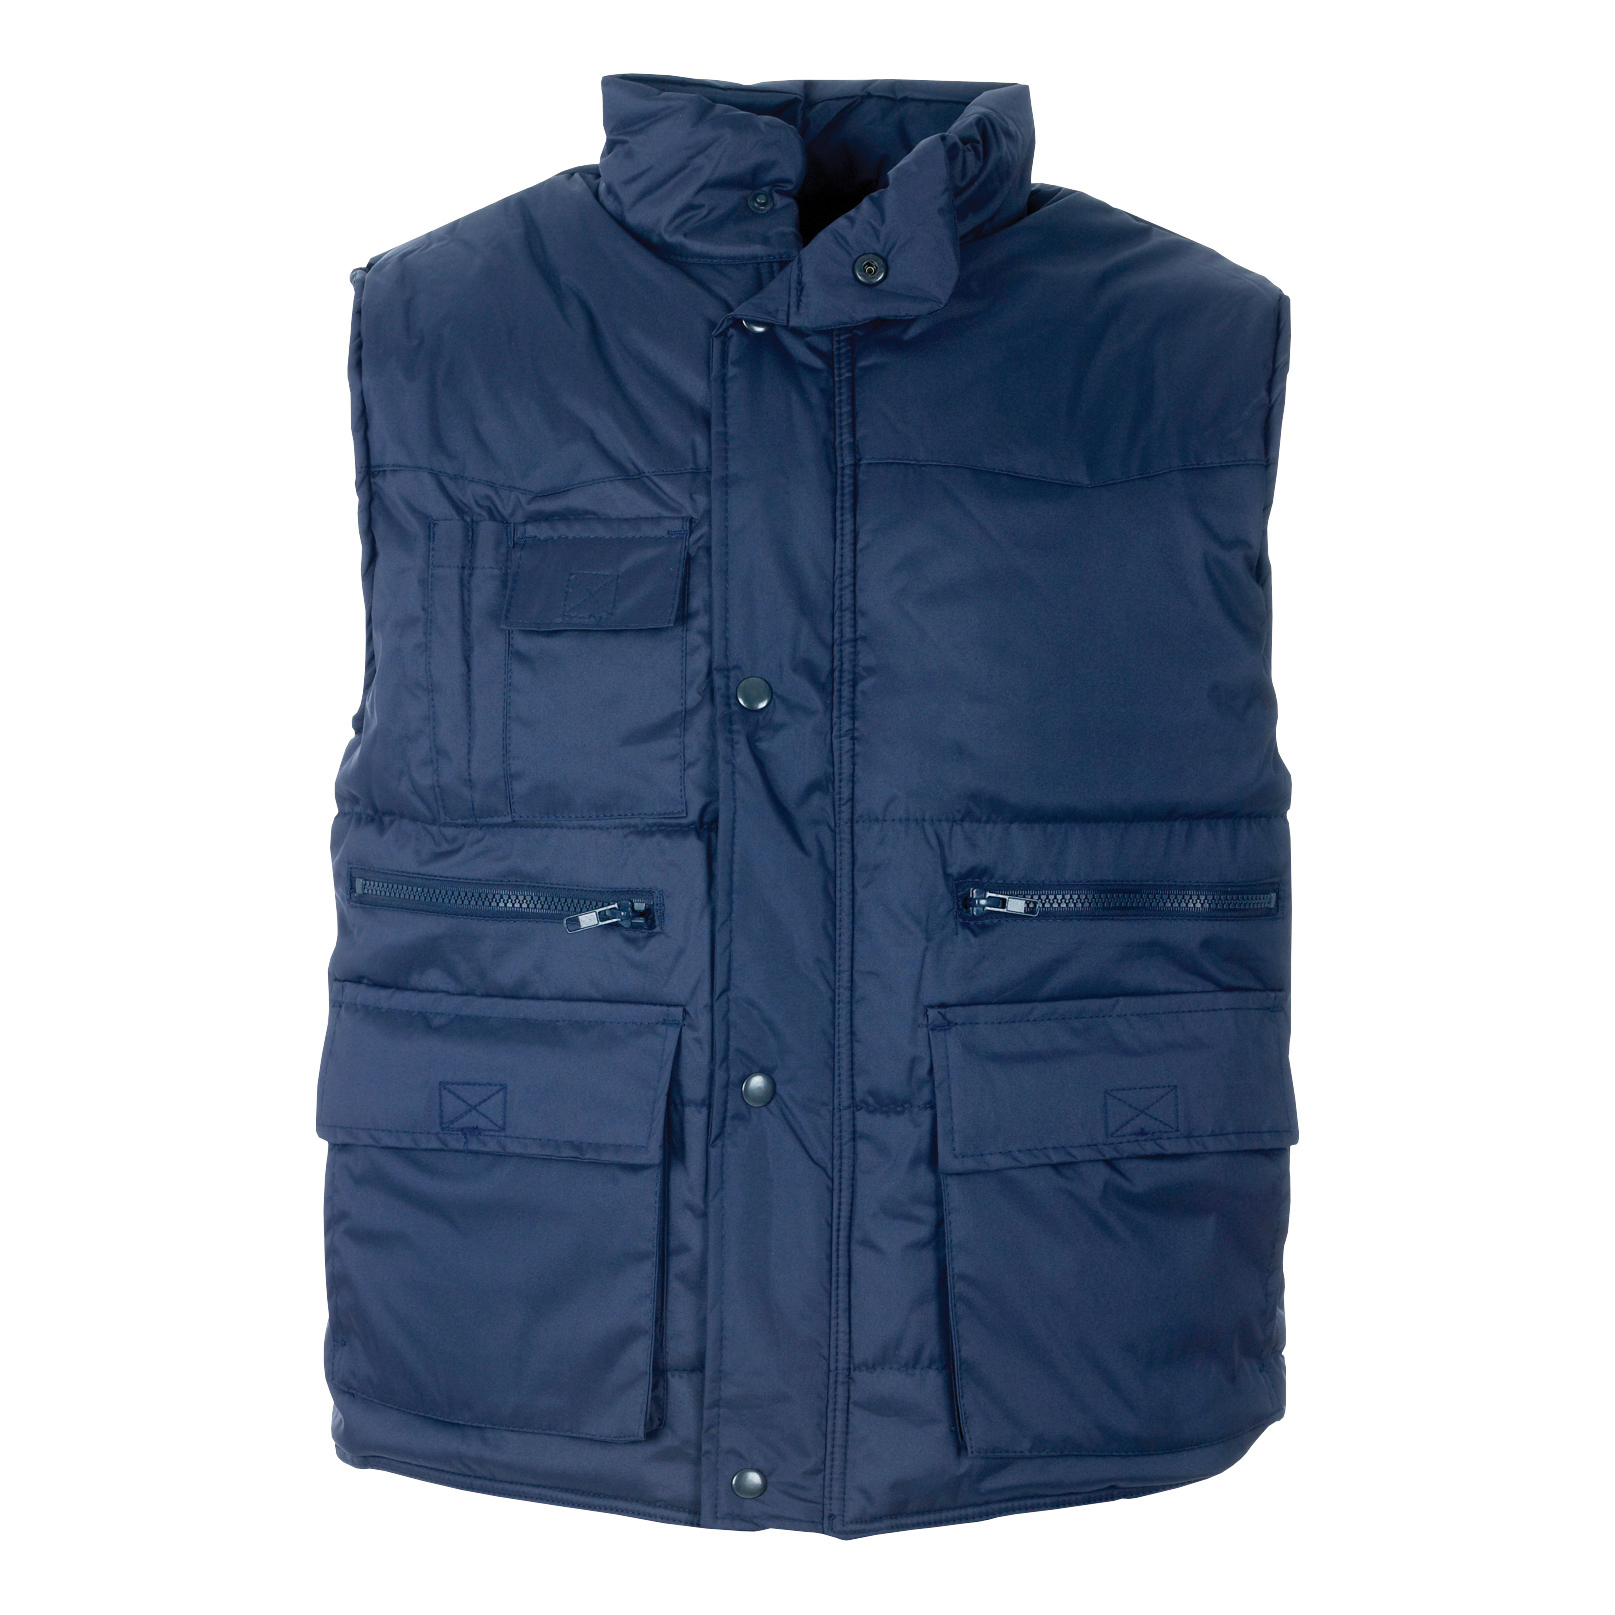 Bodywarmers Body Warmer Polyester with Padding & Multi Pockets Medium Navy Ref HBNM *Approx 3 Day Leadtime*